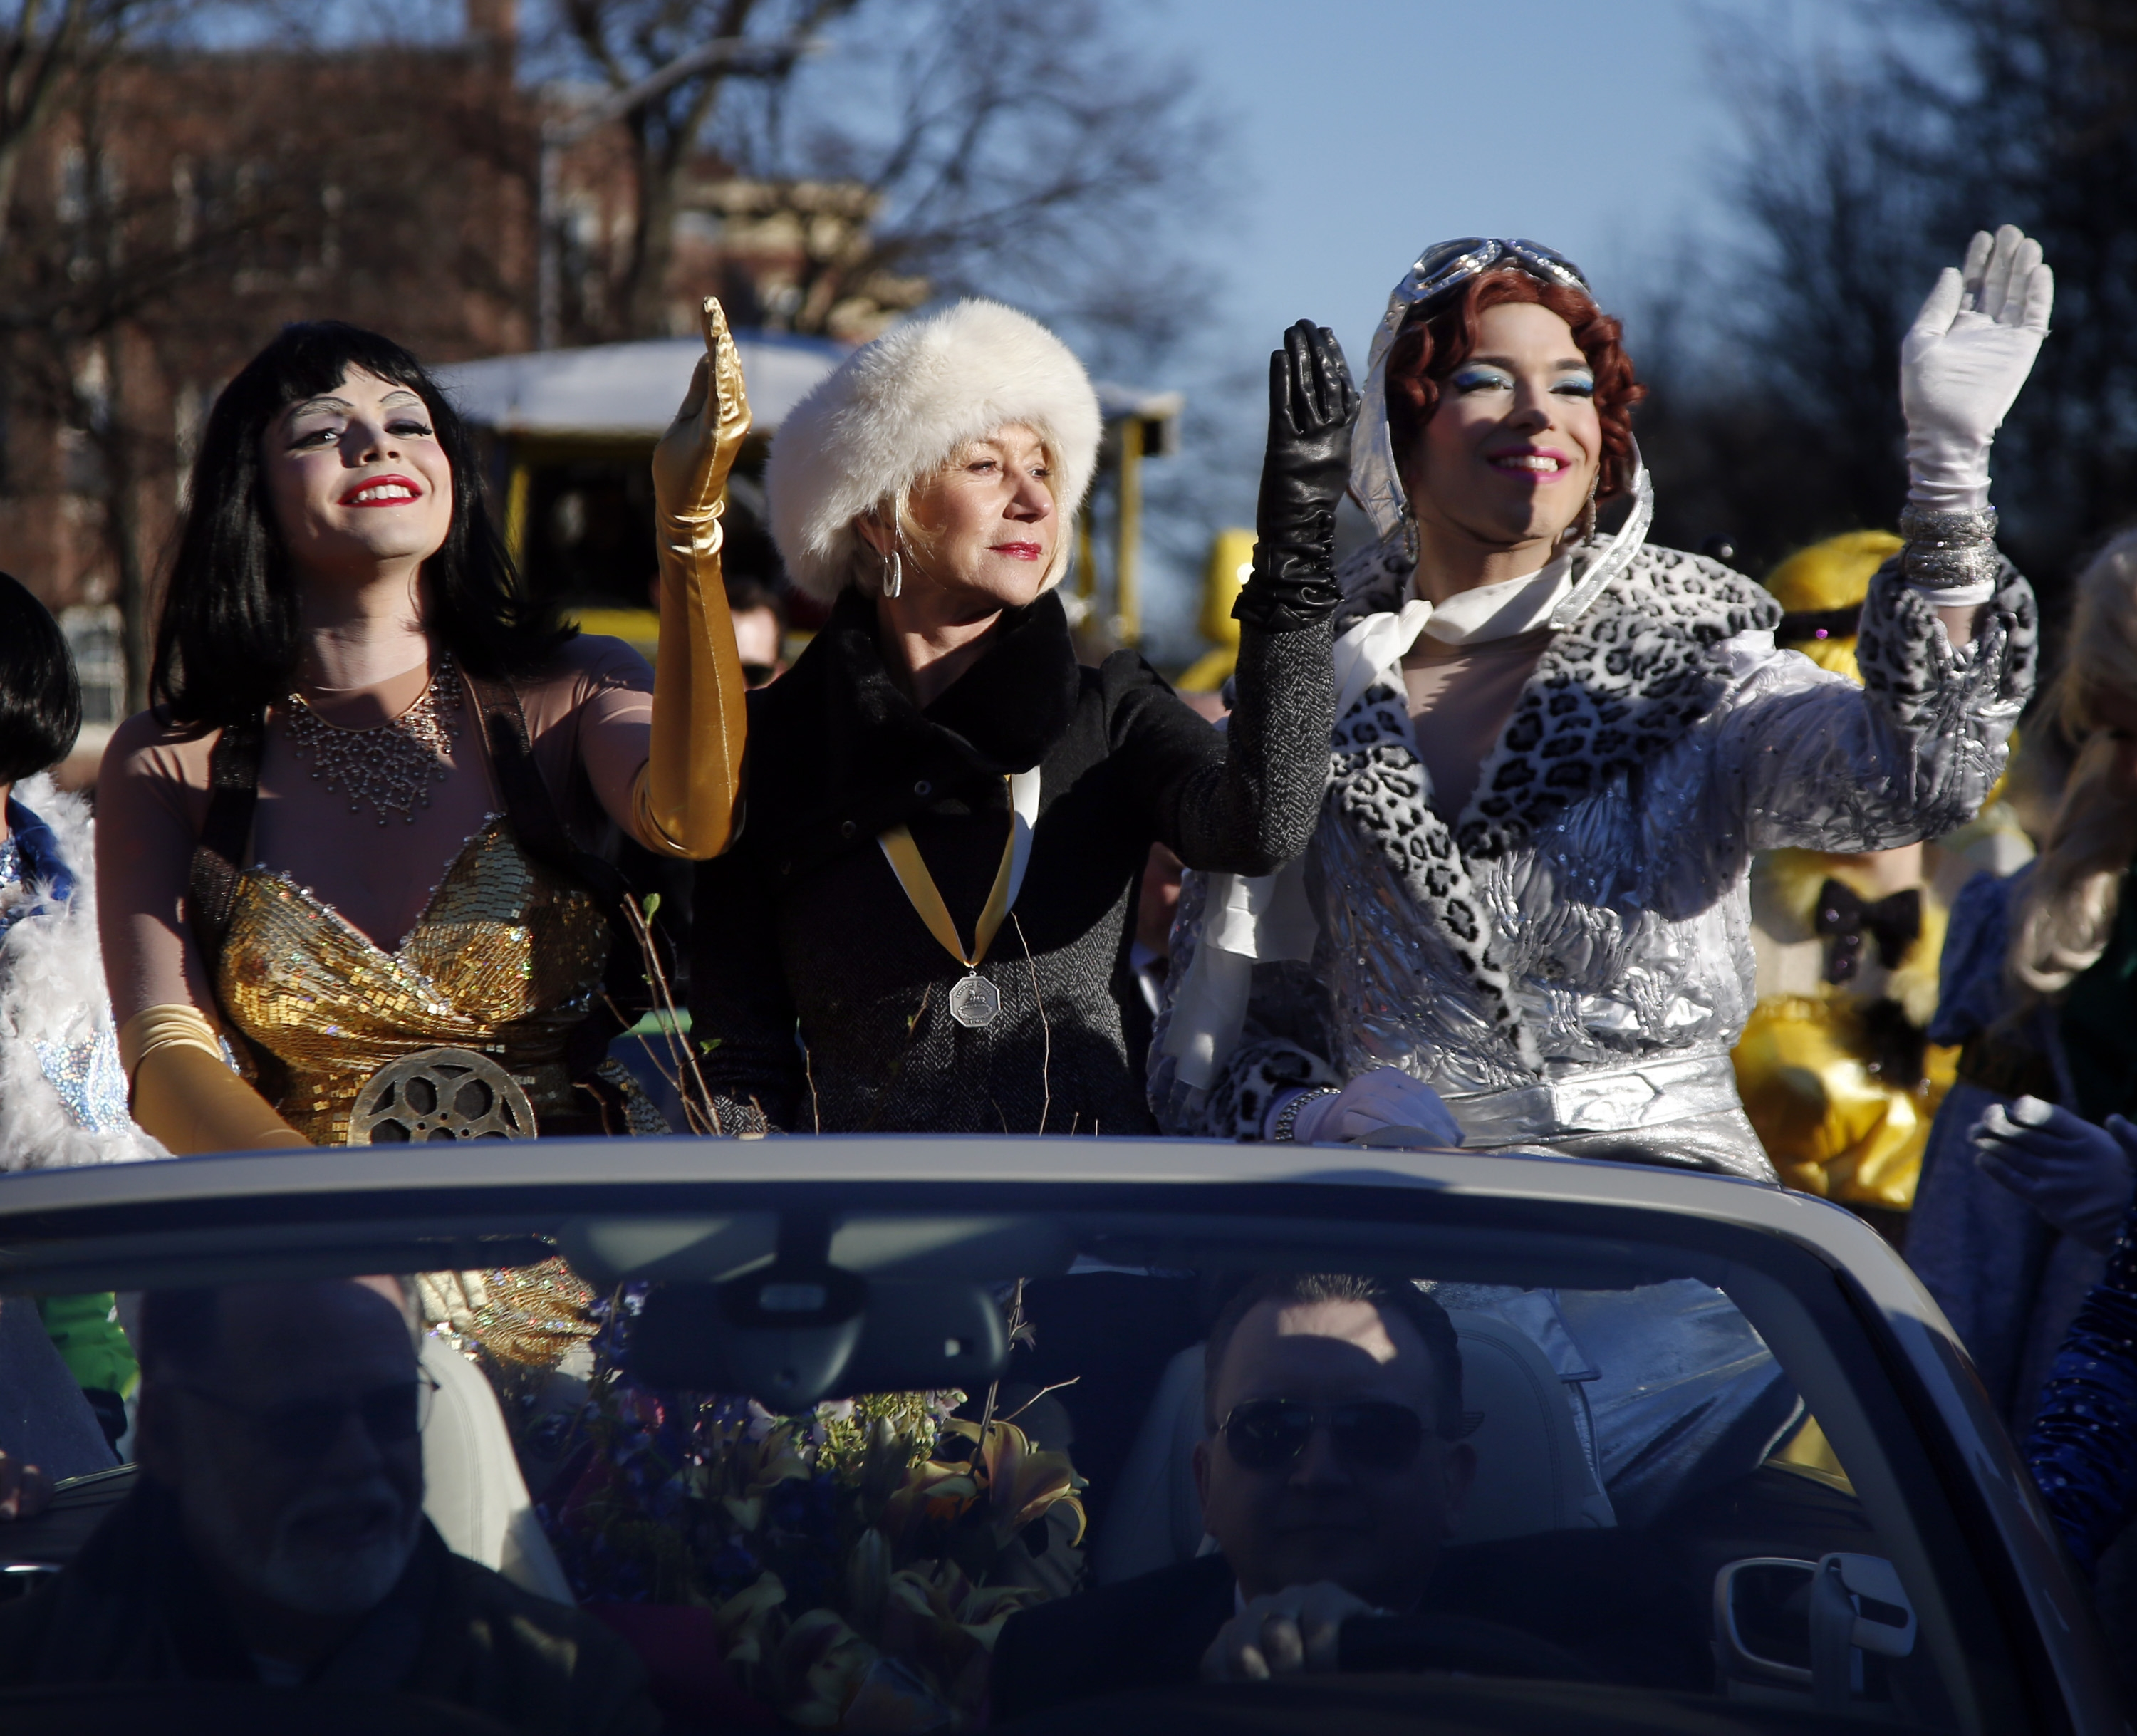 Actress Helen Mirren, in the hat, practices her royal wave while parading through Harvard Square with  drag actor Tony Oblen in Cambridge, Mass., Thursday.